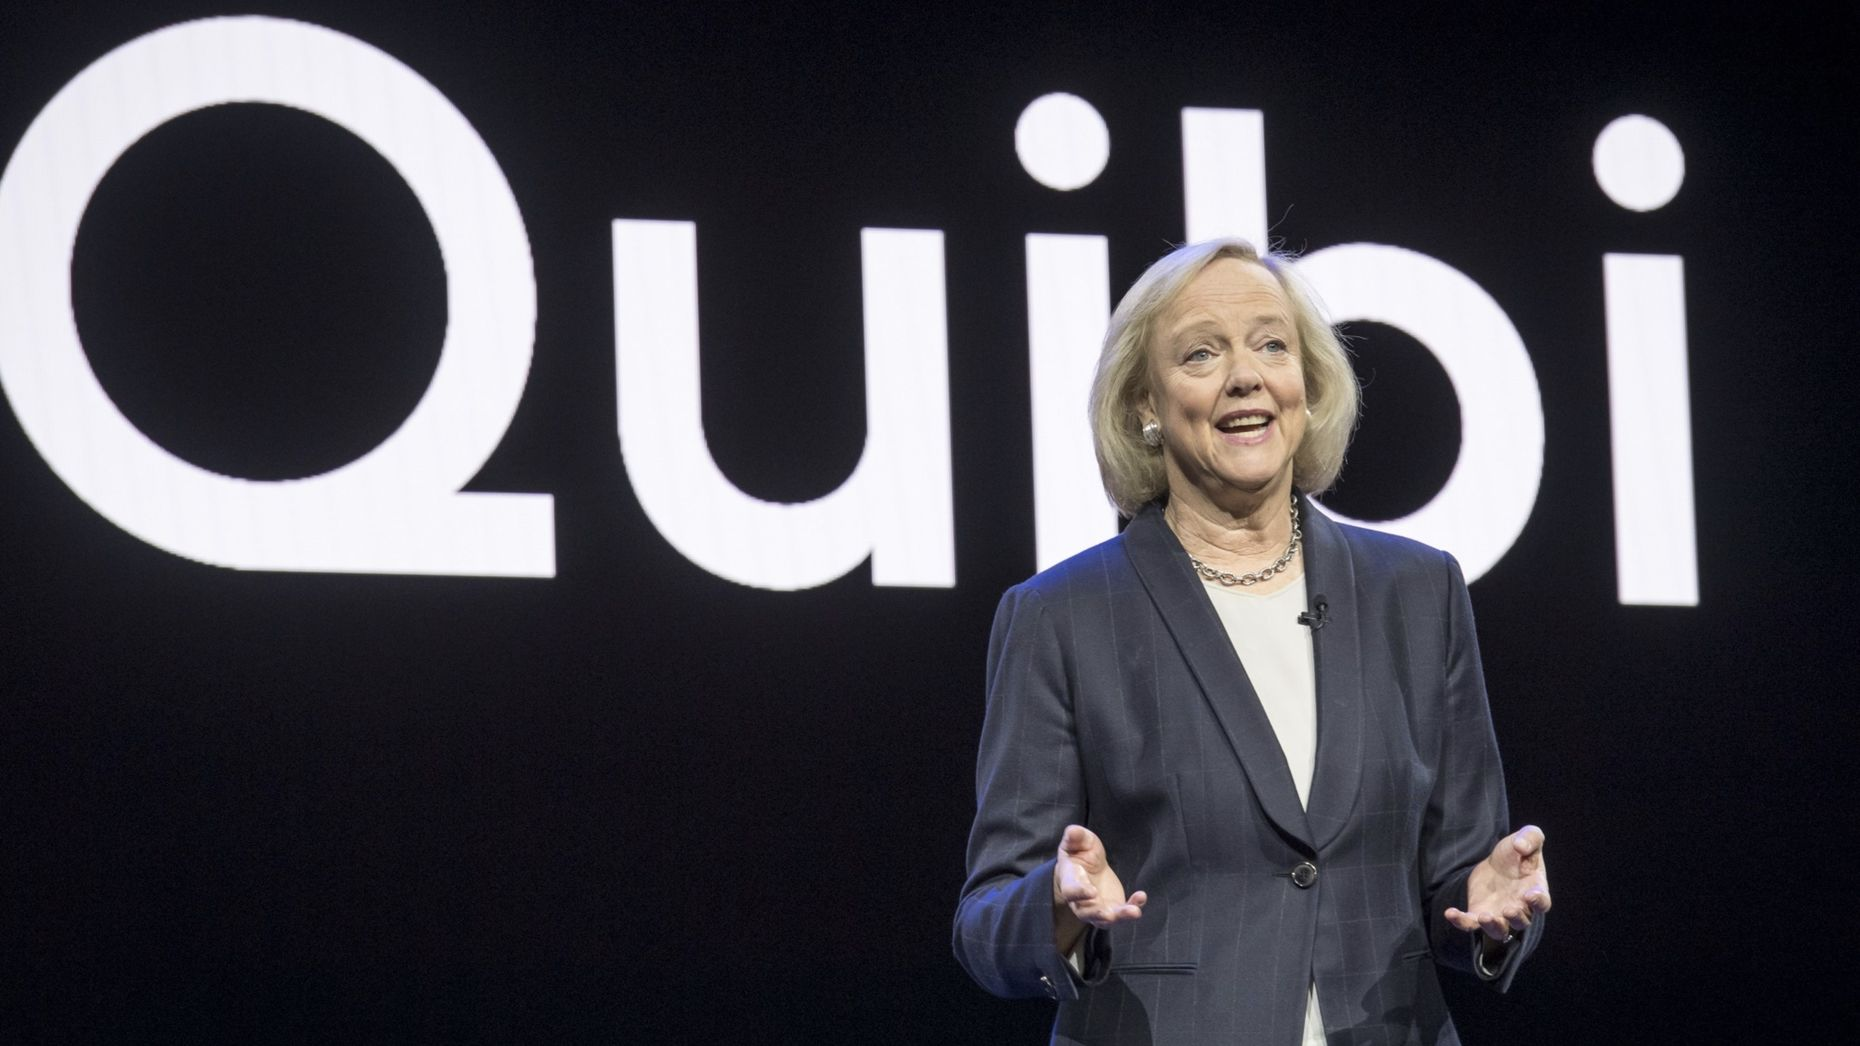 Quibi CEO Meg Whitman. Photo by Bloomberg